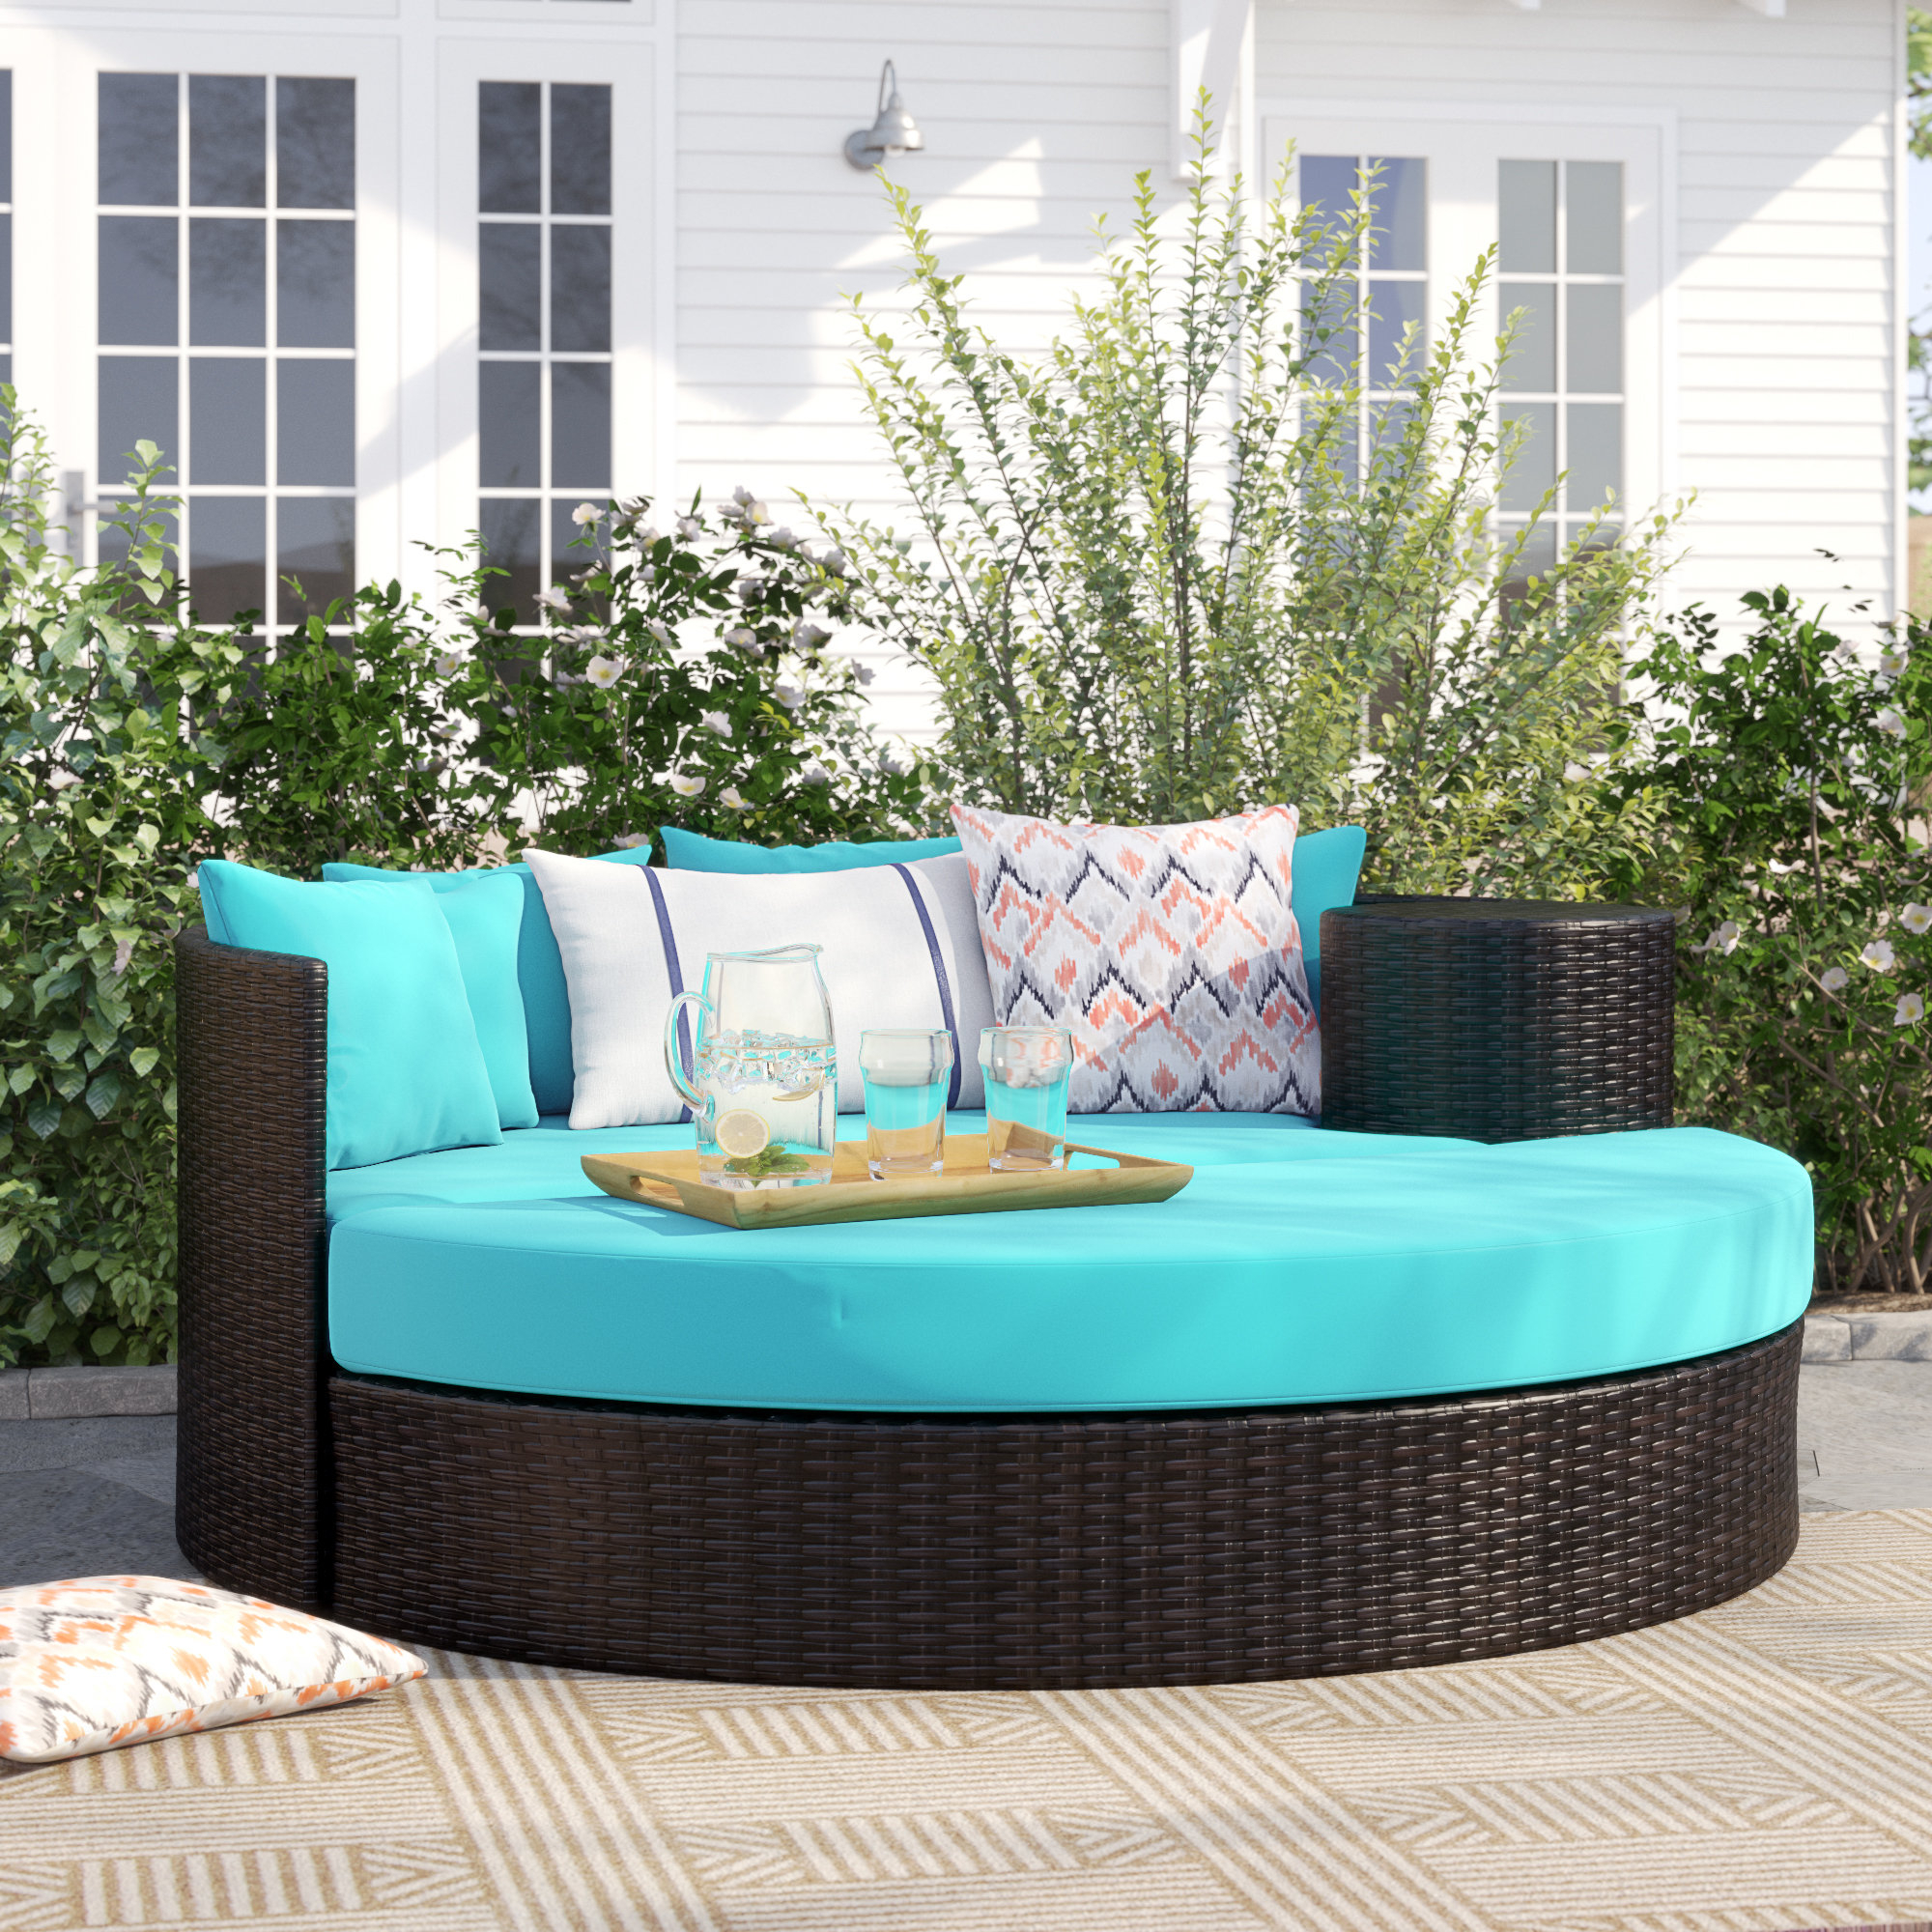 Fansler Patio Daybeds With Cushions Throughout Current Freeport Patio Daybed With Cushion (View 12 of 20)